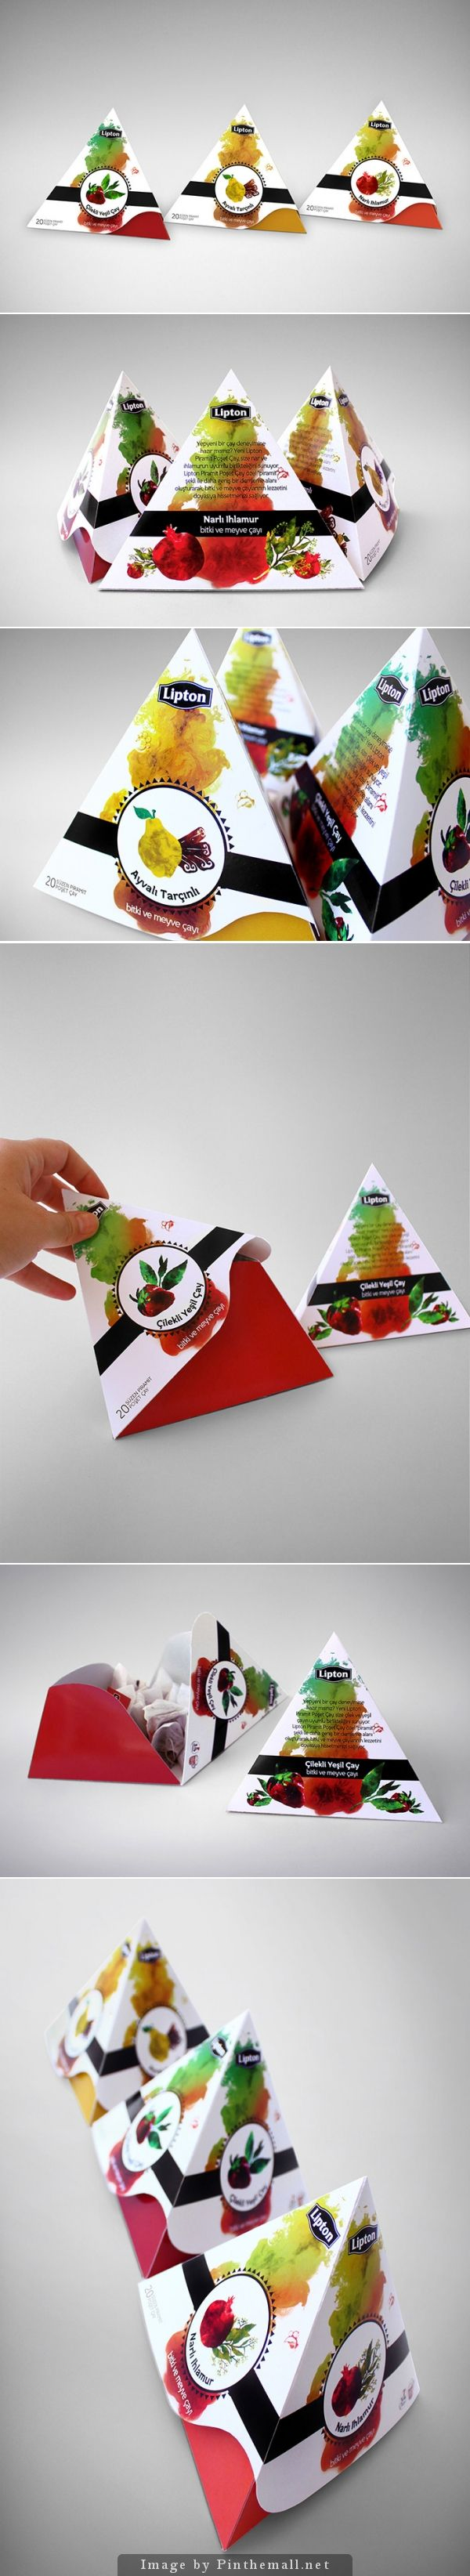 Student concept rebranding Lipton tea #packaging curated by Packaging Diva PD created via http://www.packageinspiration.com/lipton-pyramid-tea-student-work.html/